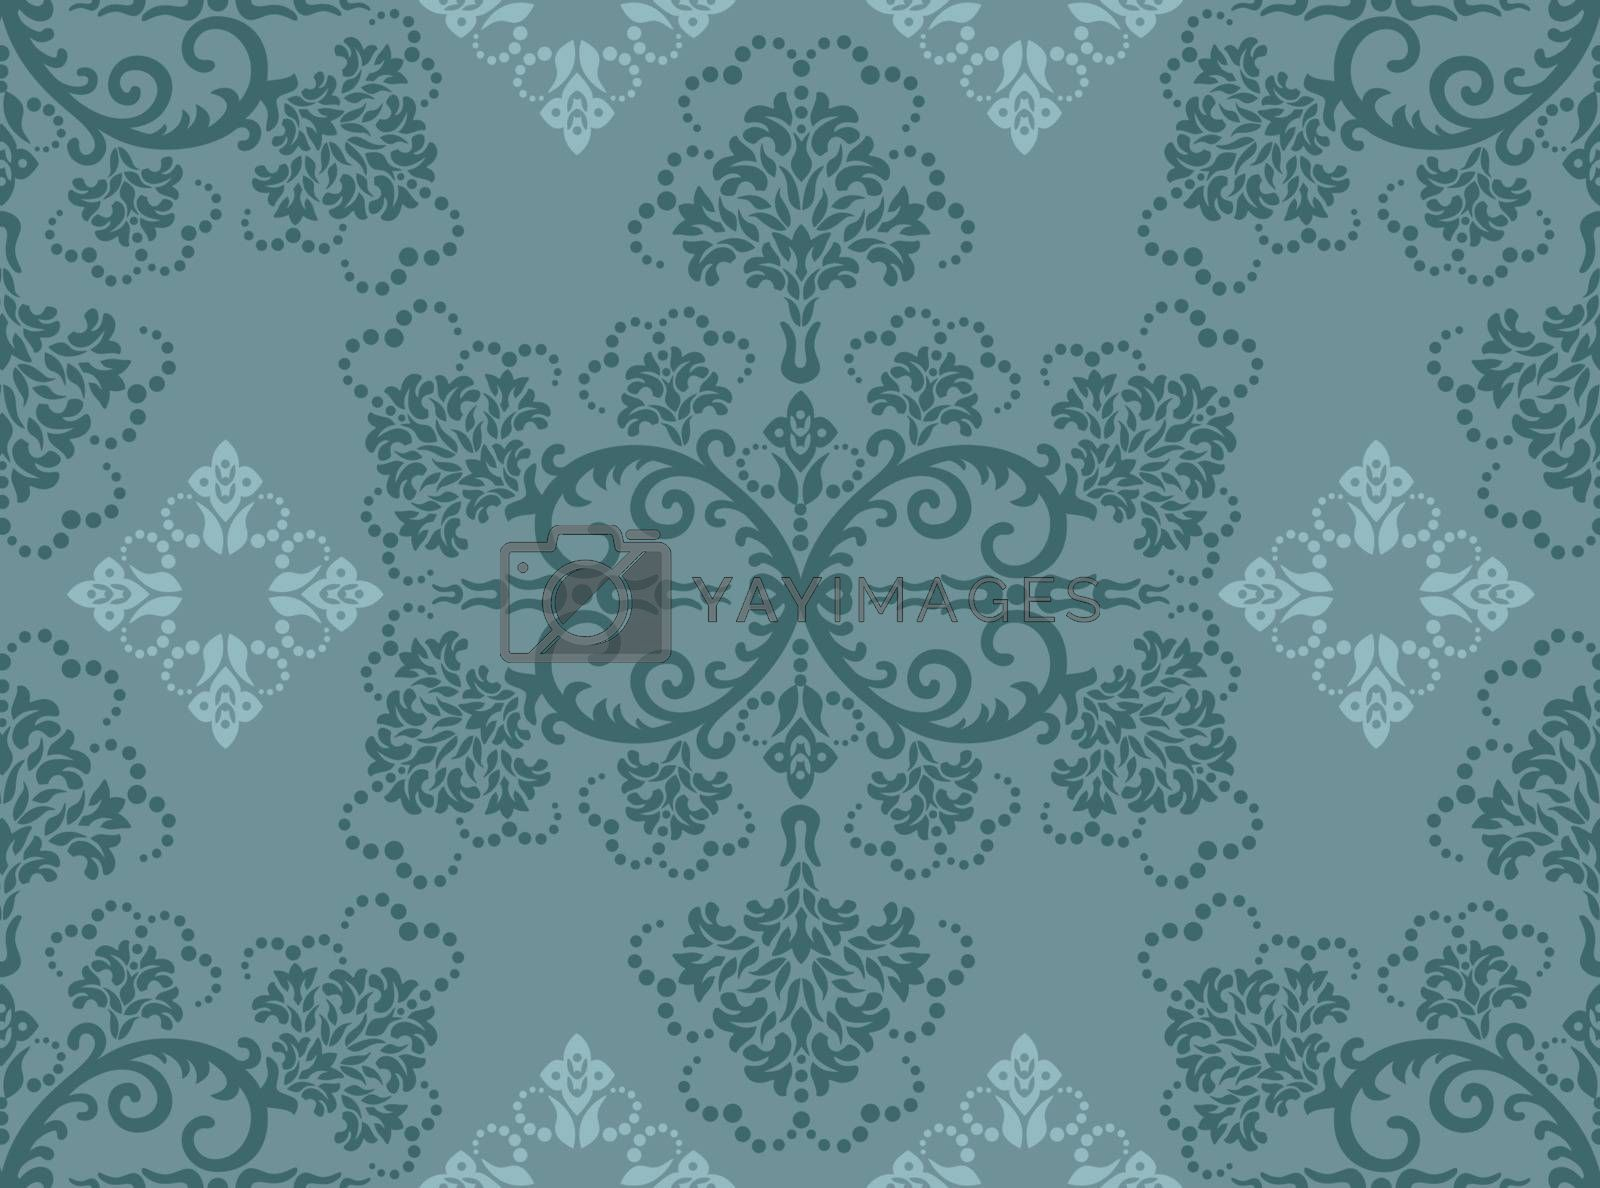 Seamless turquoise floral wallpaper pattern. This image is a vector illustration.